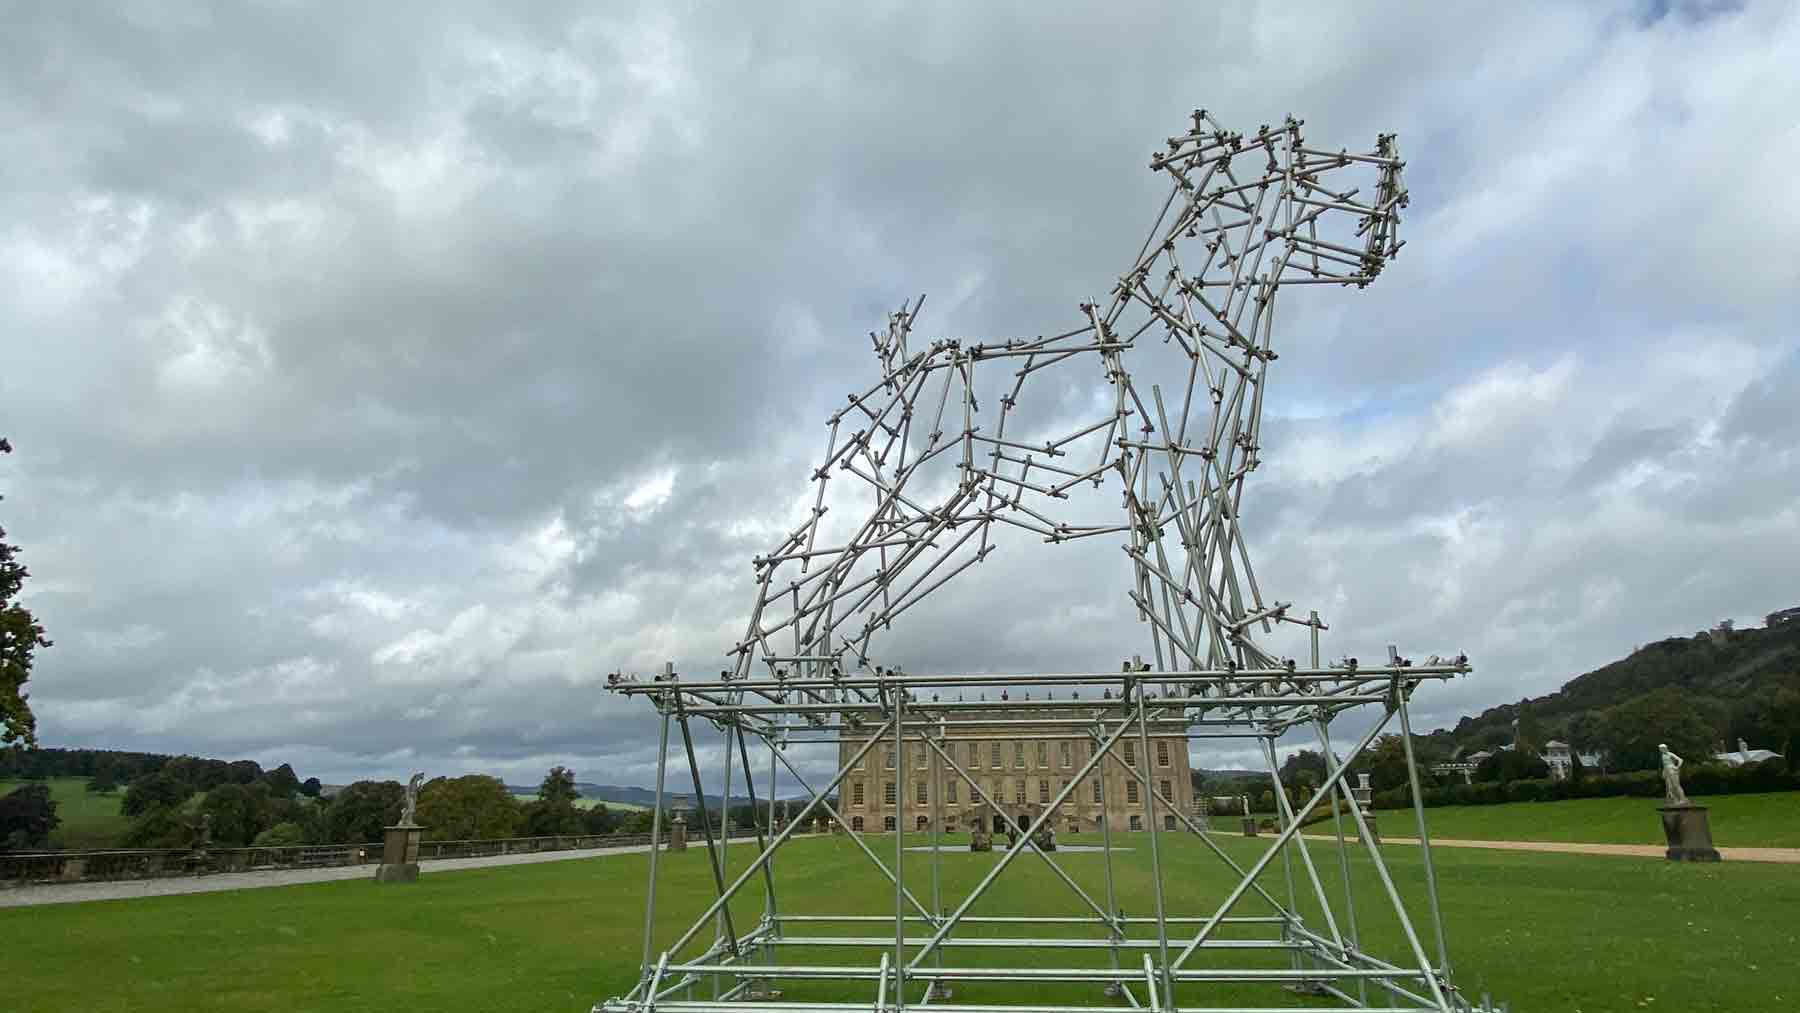 Chatsworth seen through a large dog sculpture made from scaffolding